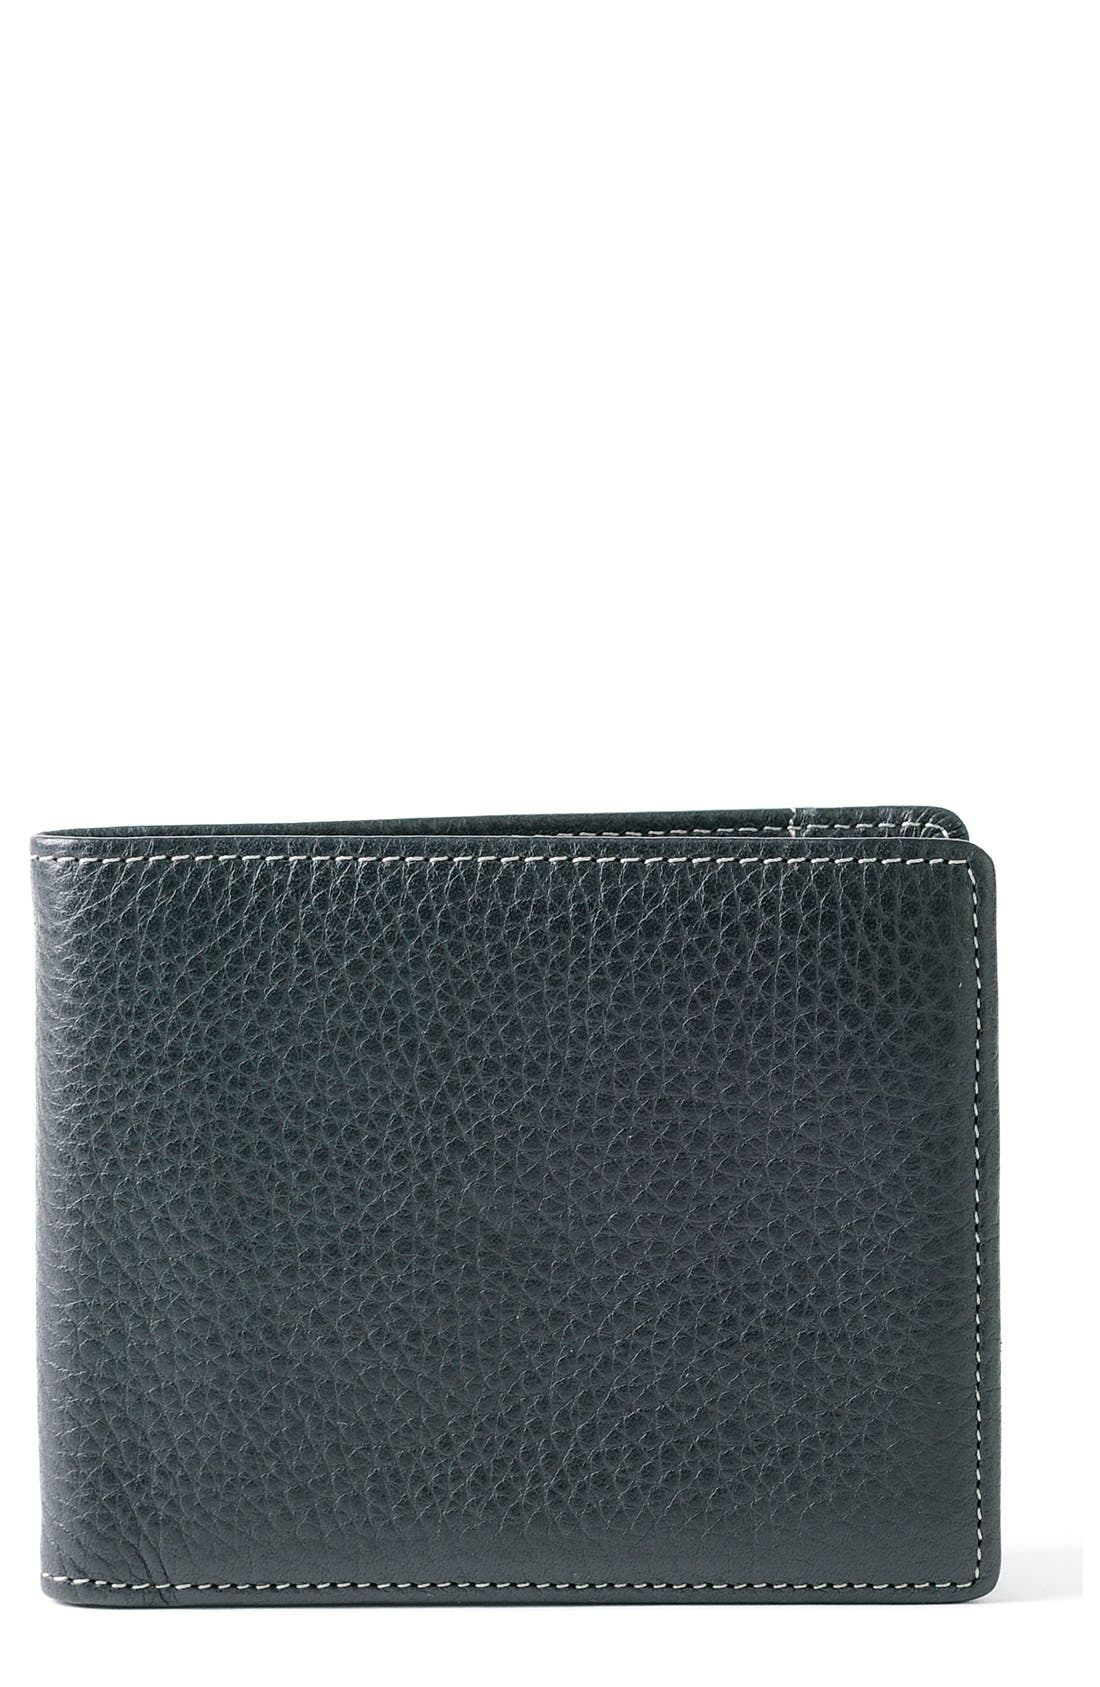 'Tyler' RFID Wallet,                             Main thumbnail 1, color,                             BLACK